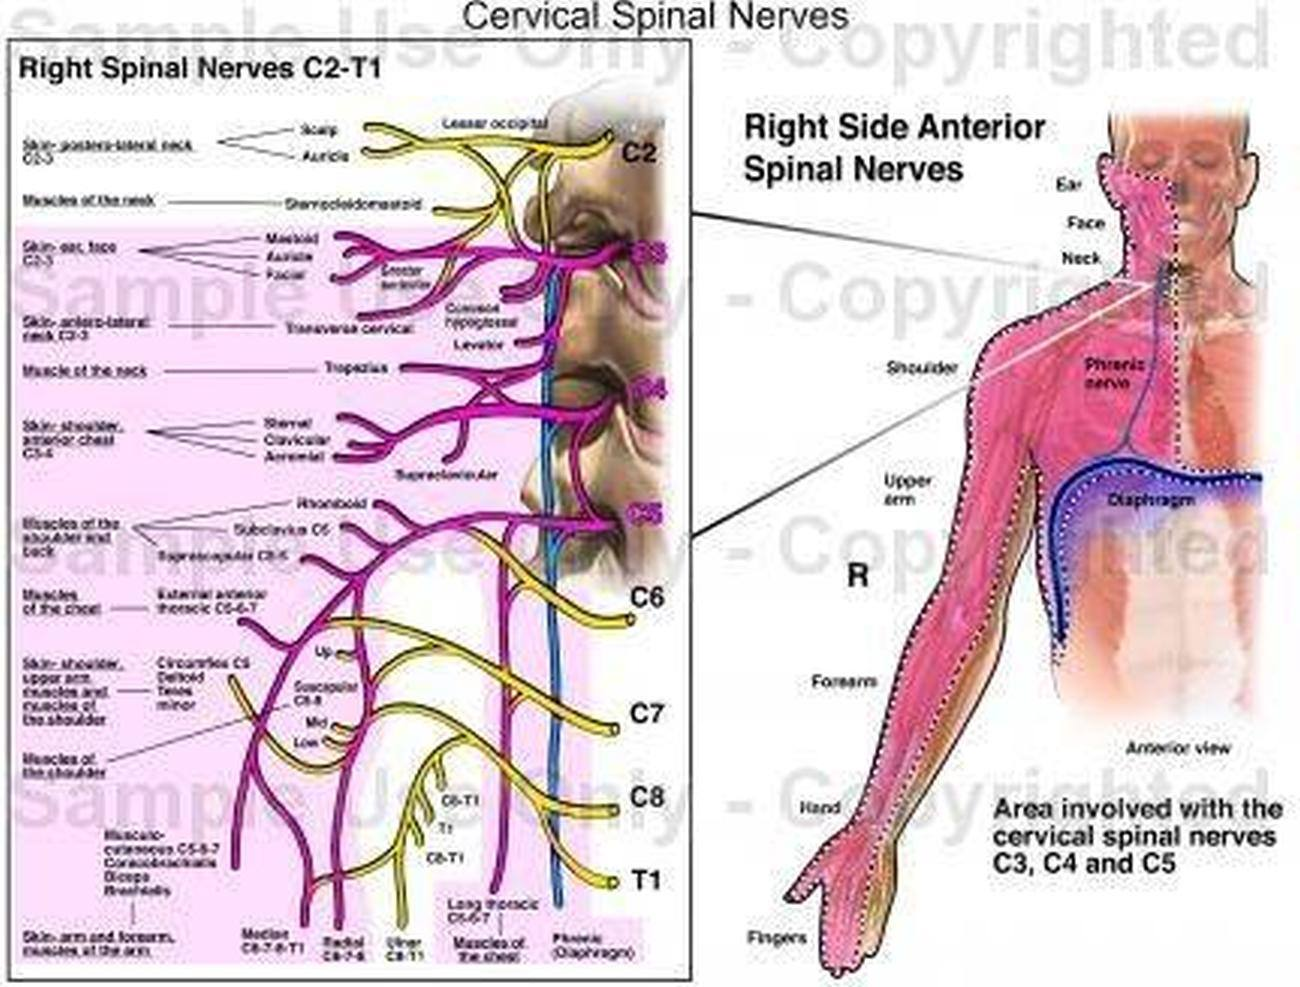 Pictures Of Cervical Spinal Nerve